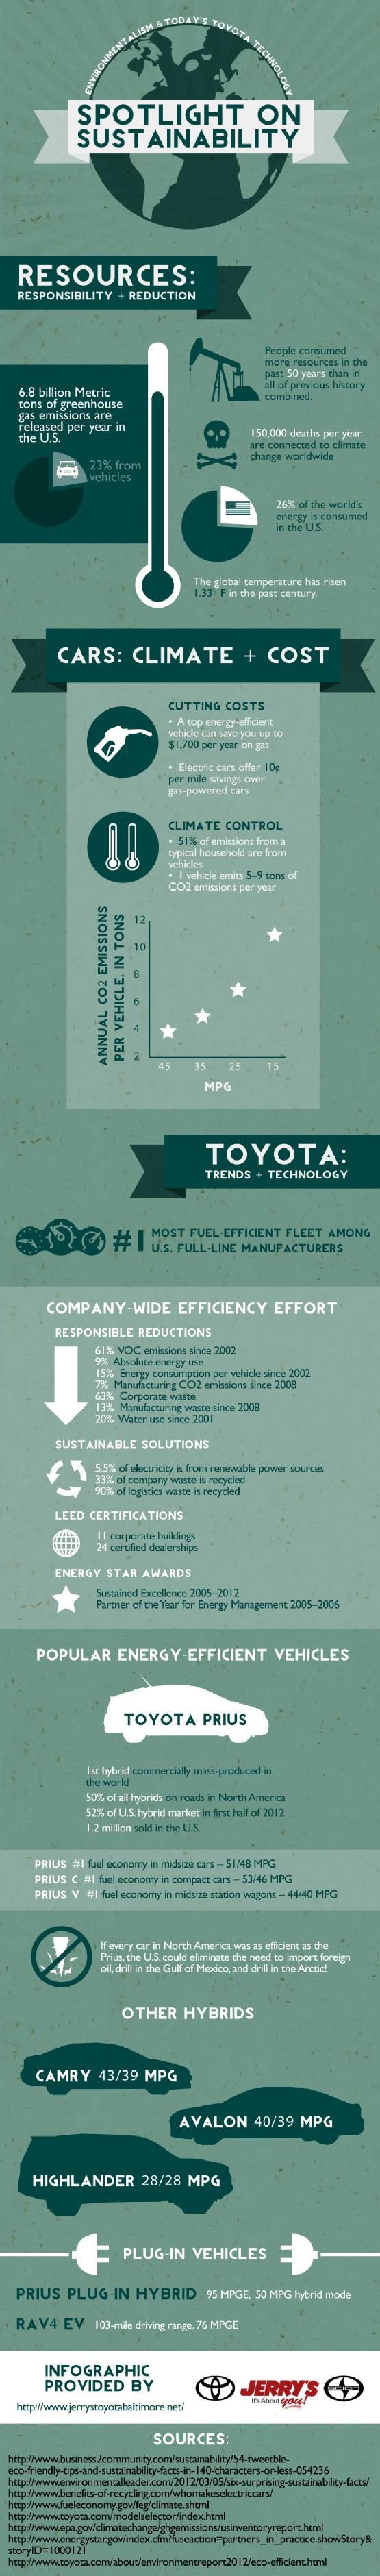 A vehicle that gets 45 miles per gallon emits 3.9 tons of carbon dioxide. A vehicle that only gets 15 miles per gallon emits 11 tons of carbon dioxide. This infographic from a Toyota dealer in Baltimore shows the impact of vehicles on the environment. Source: http://www.jerrystoyotabaltimore.net/648148/2013/02/23/jerrys-toyota-dealers-in-baltimore-put-a-spotlight-on-sustainability-environmentalism-and-toyota-technology-today-infographic.html